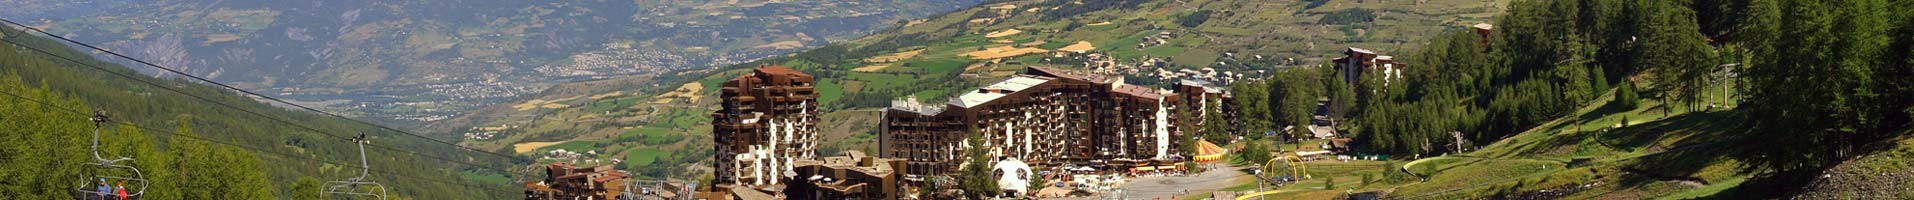 stay-in-hotel-les-orres summer